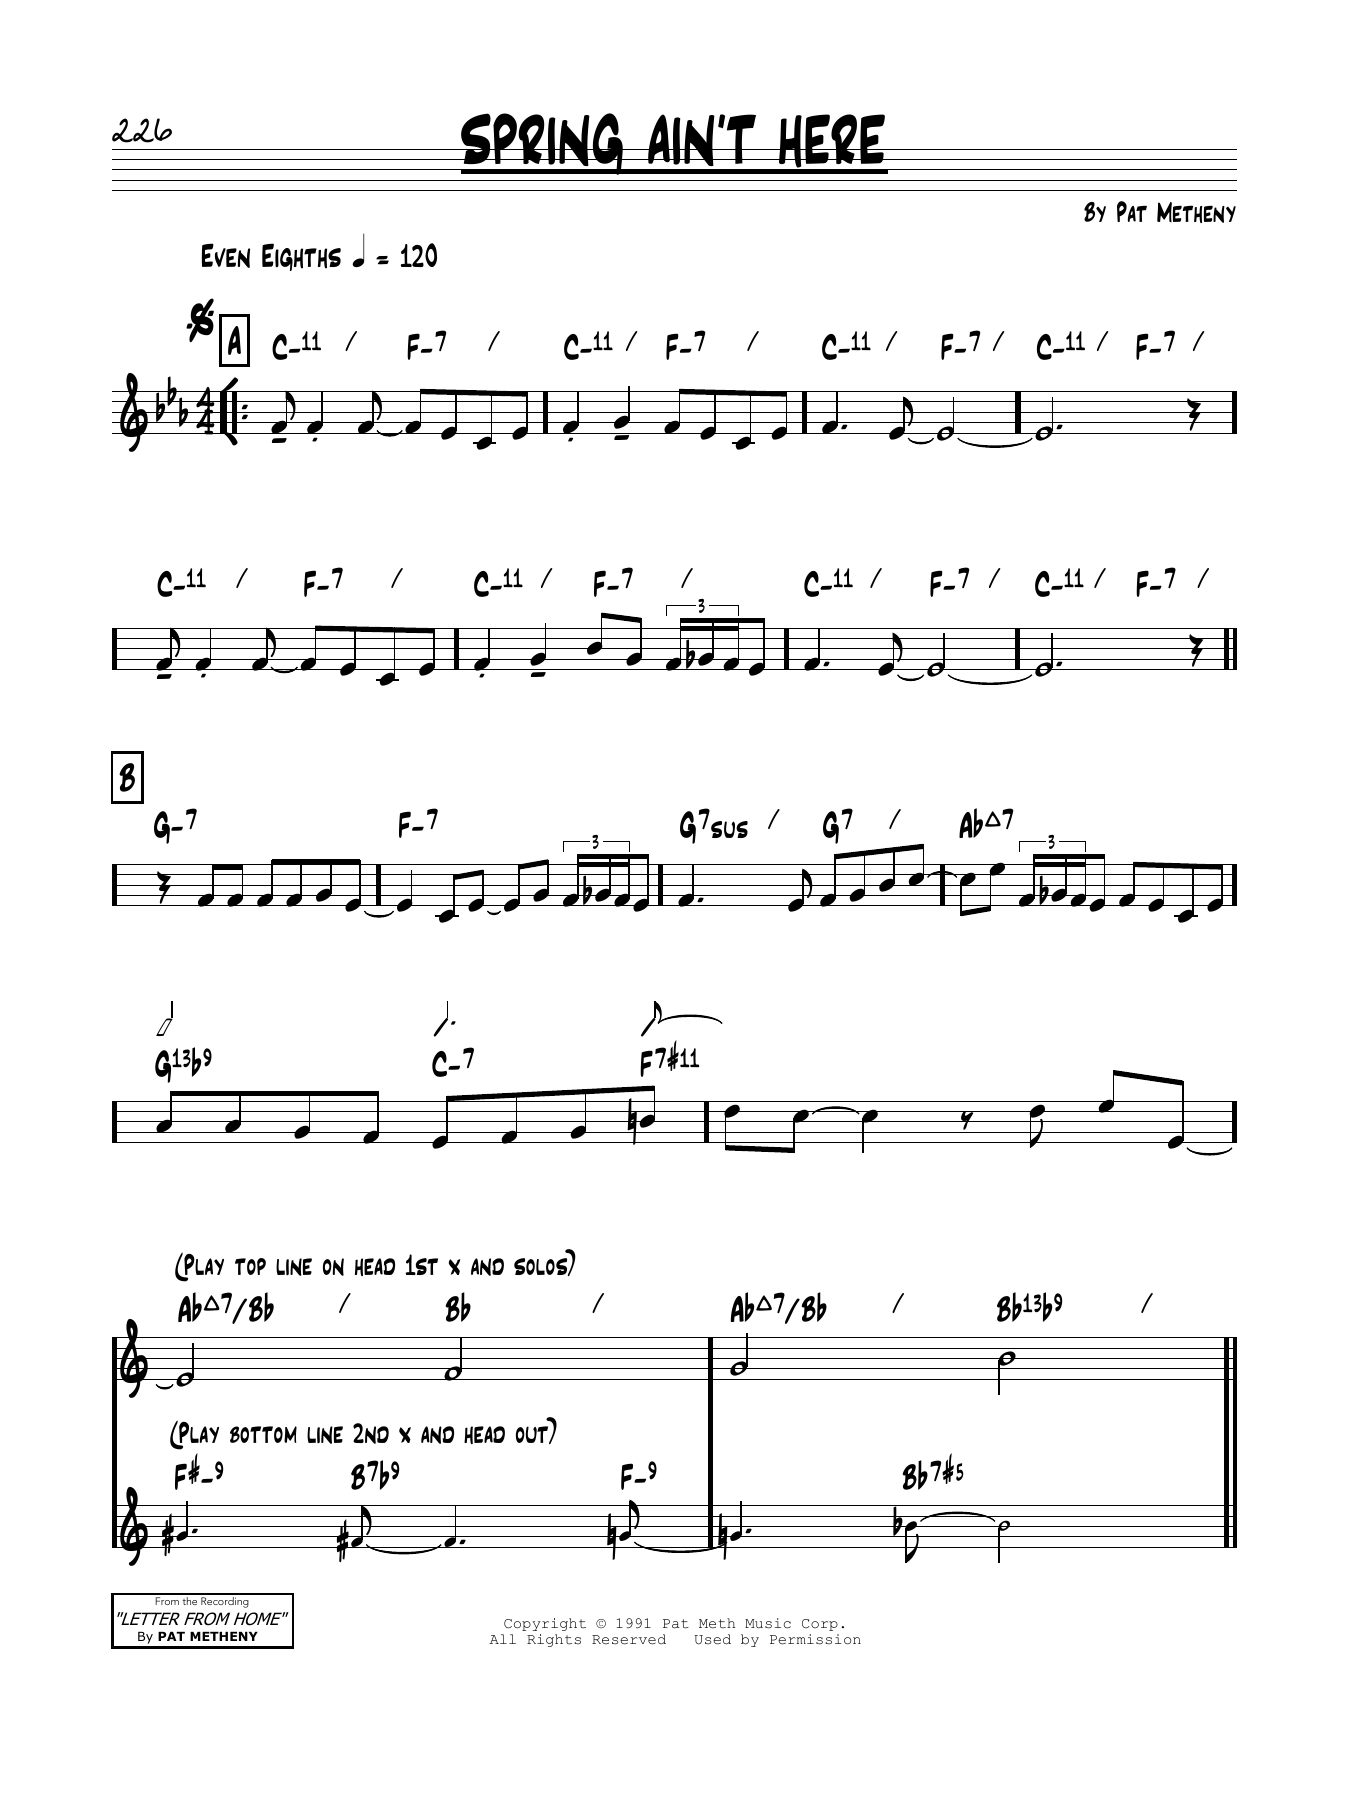 Pat Metheny Spring Ain't Here sheet music notes and chords. Download Printable PDF.